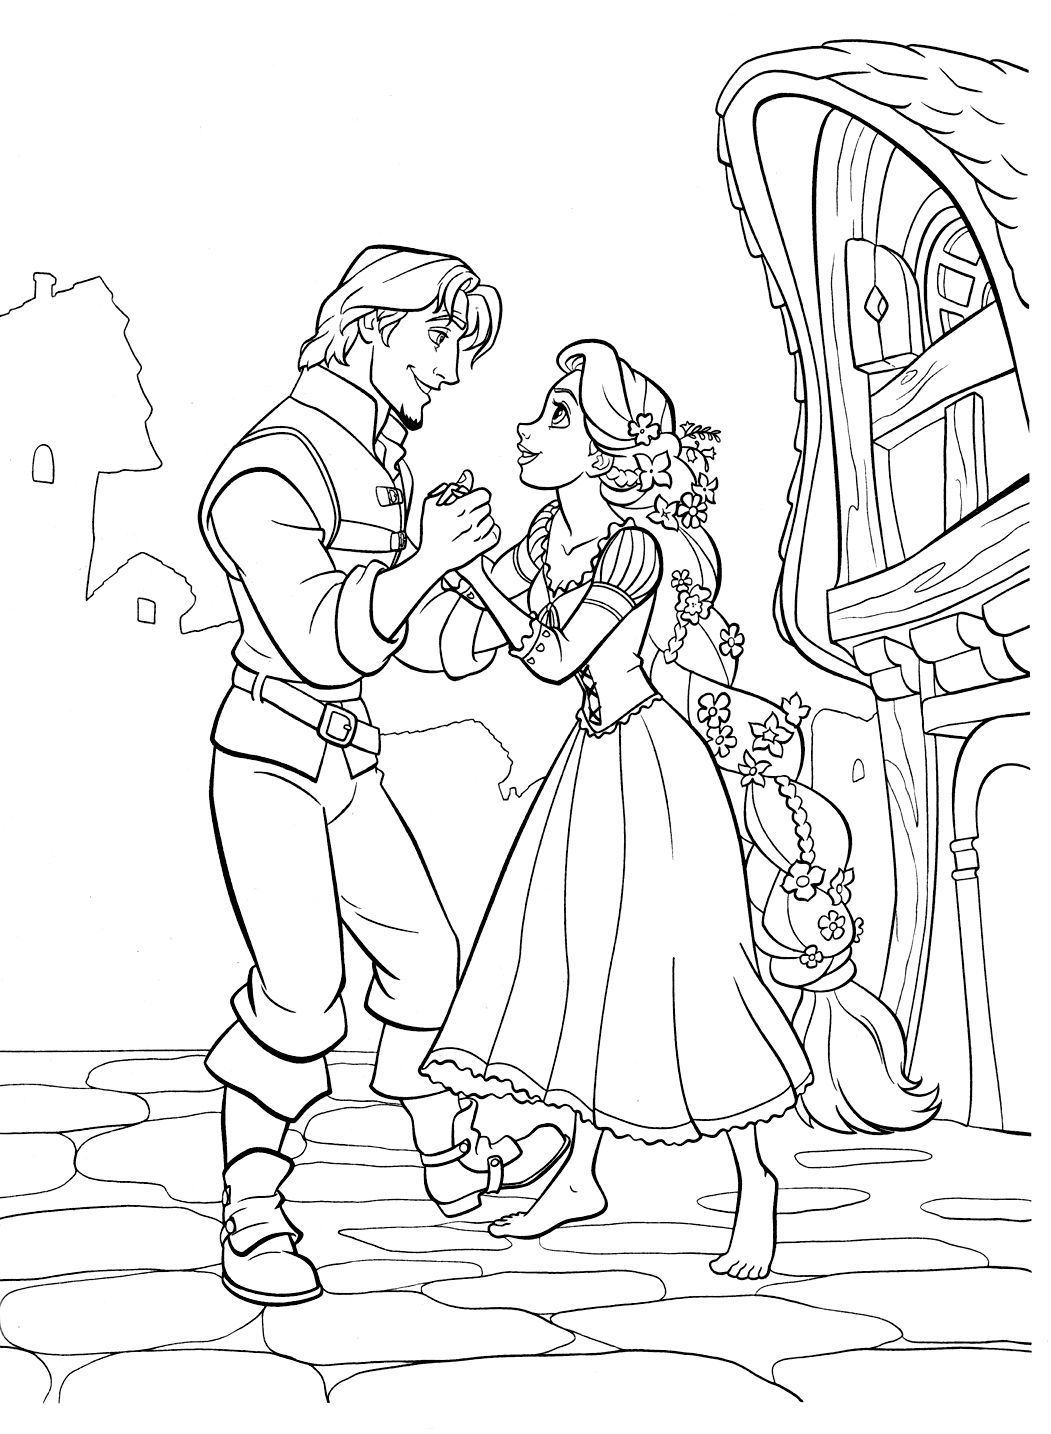 Tangled | Coloring books & Pages | Pinterest